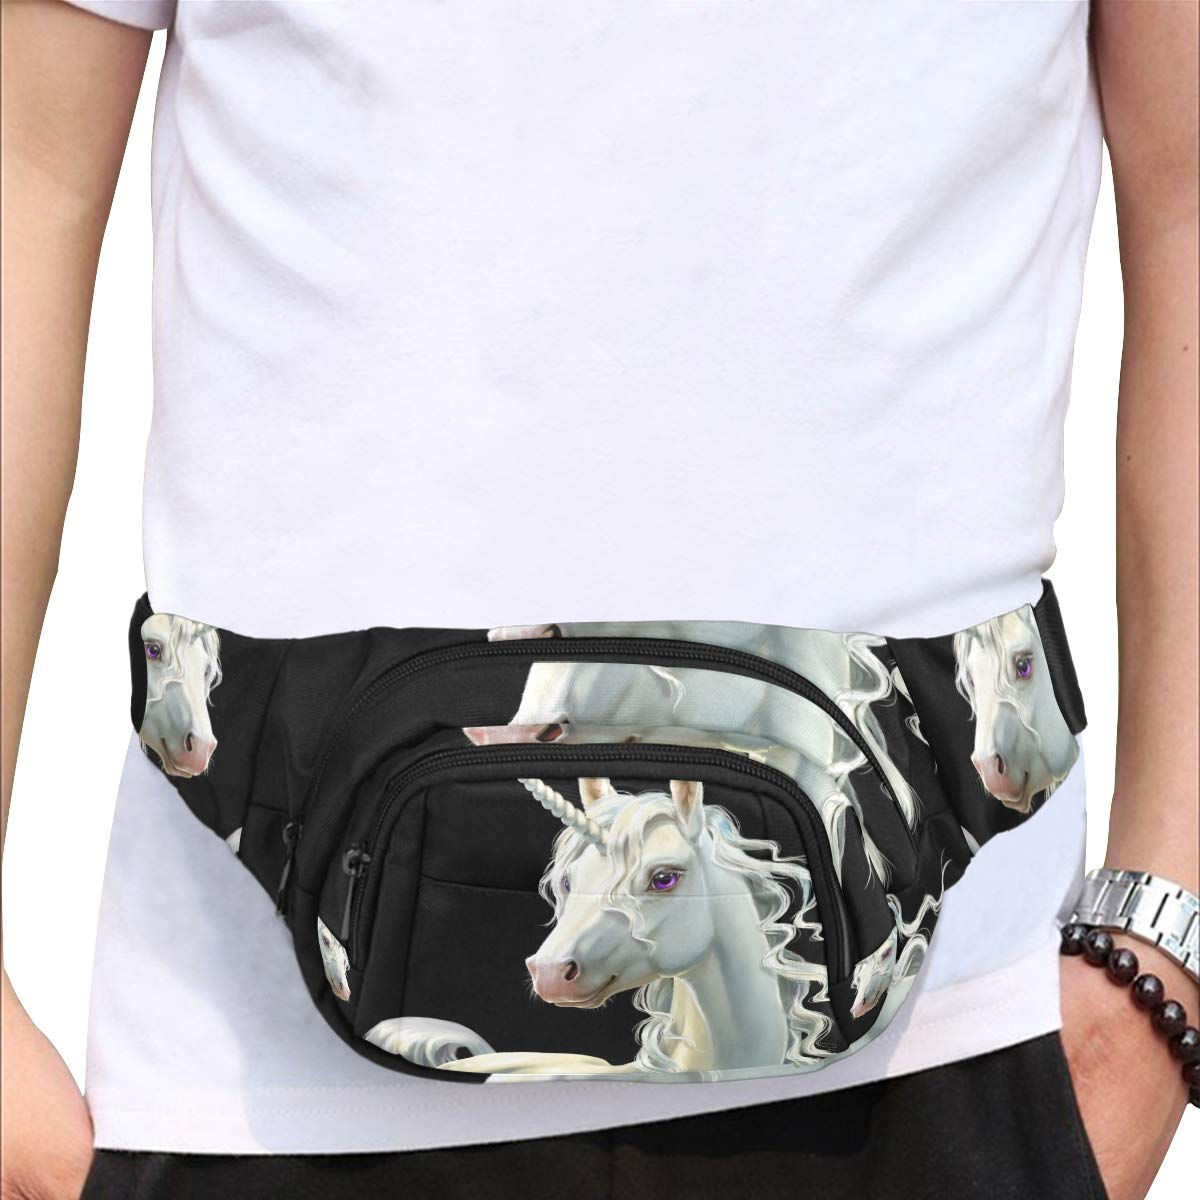 Unicorn With Wreath Of Flowers Fenny Packs Waist Bags Adjustable Belt Waterproof Nylon Travel Running Sport Vacation Party For Men Women Boys Girls Kids